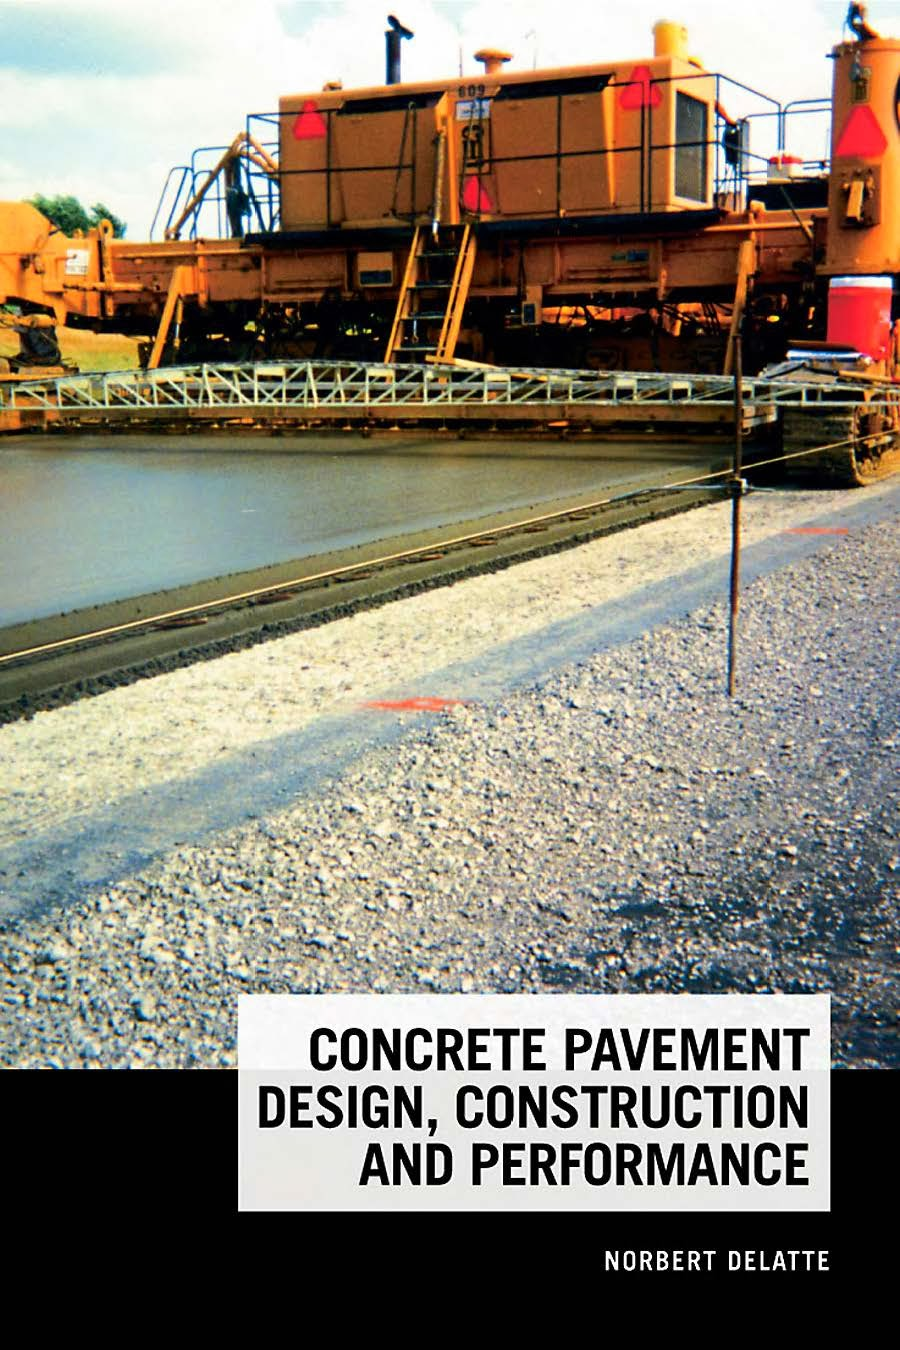 Concrete Pavement Design,Construction & Performance by Norbert Delatte